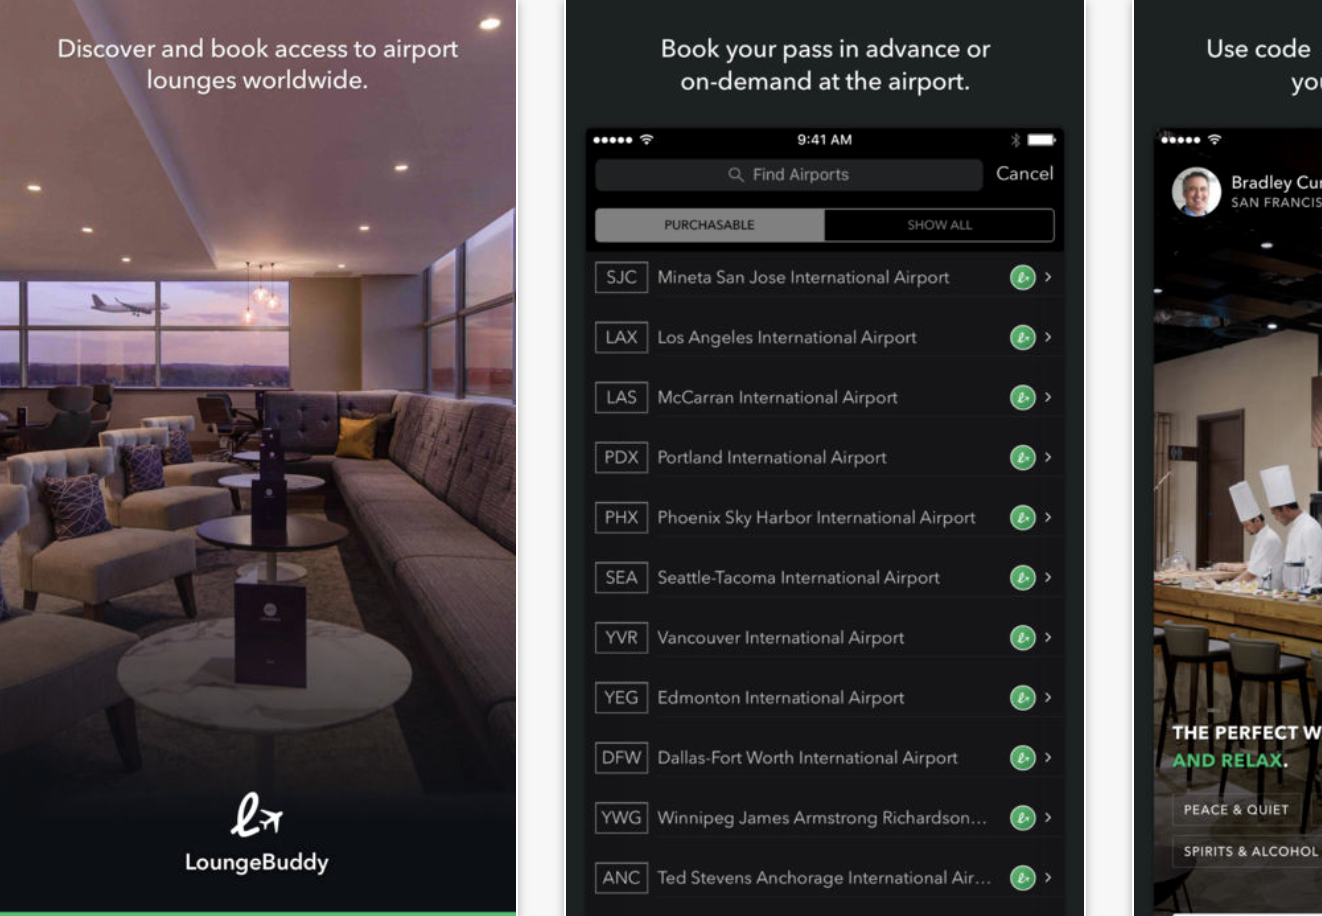 Lounge Buddy screenshot from App Store